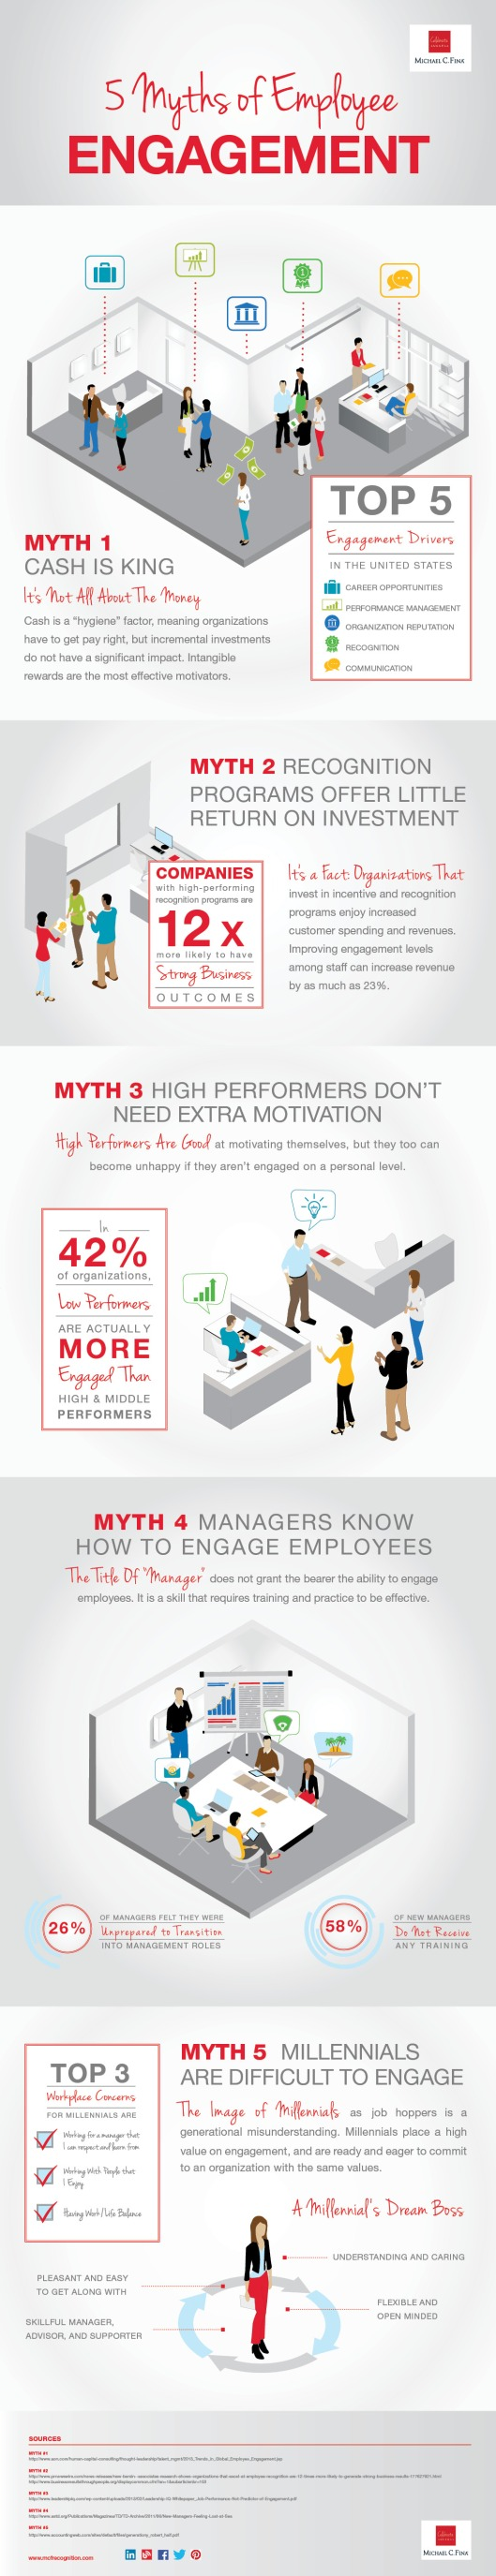 5-Myths-of-Engagement